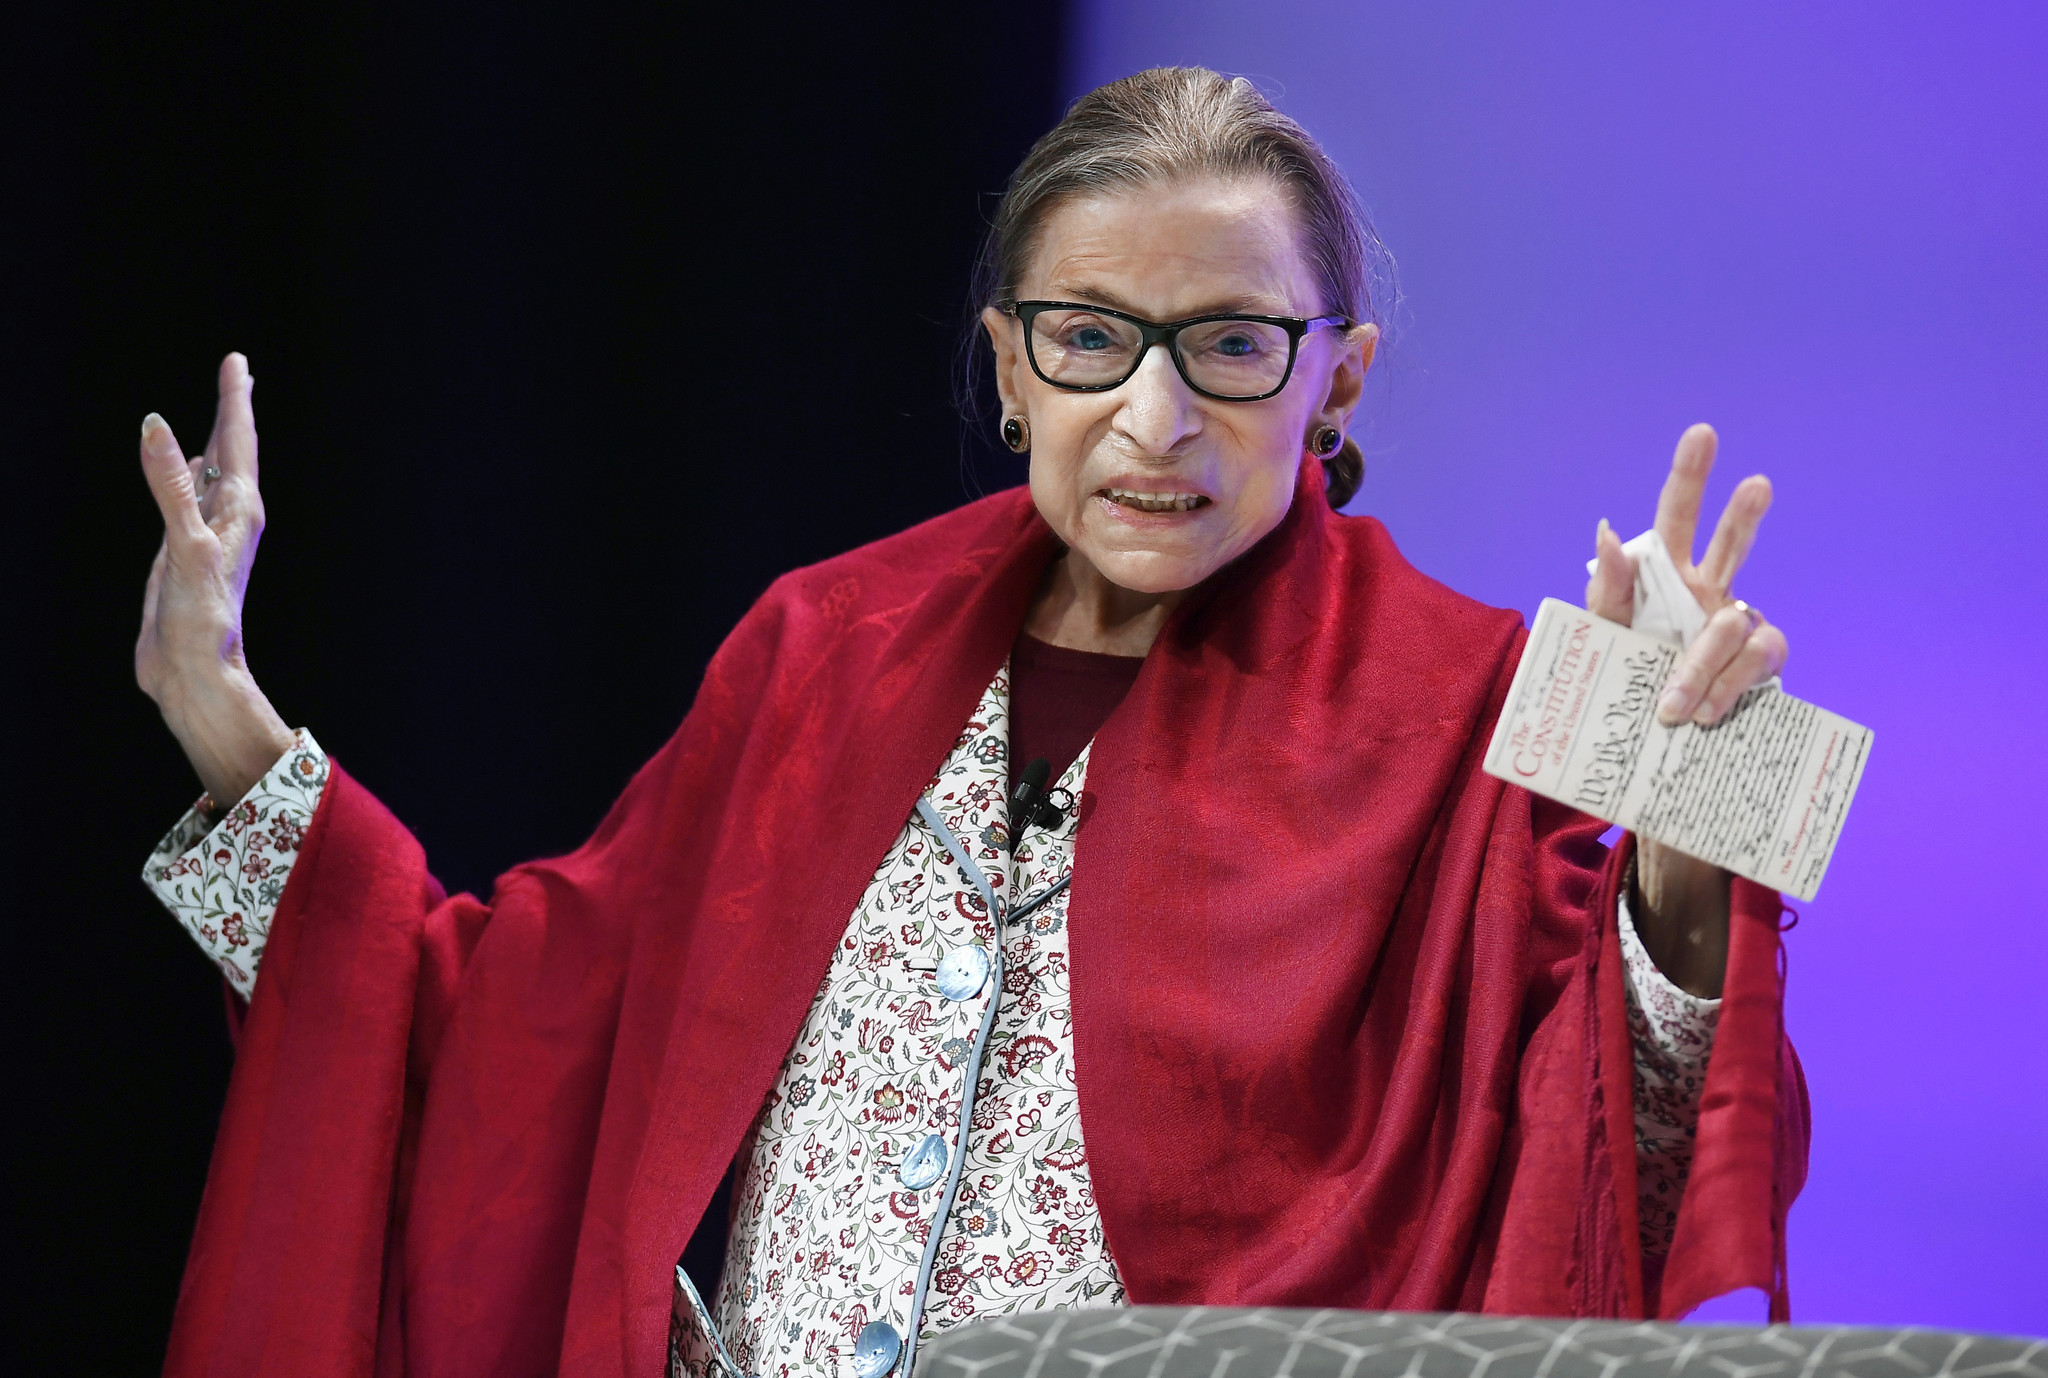 Ruth Bader Ginsburg bends coronavirus rules to pump iron: 'Hey, she ain't having it'